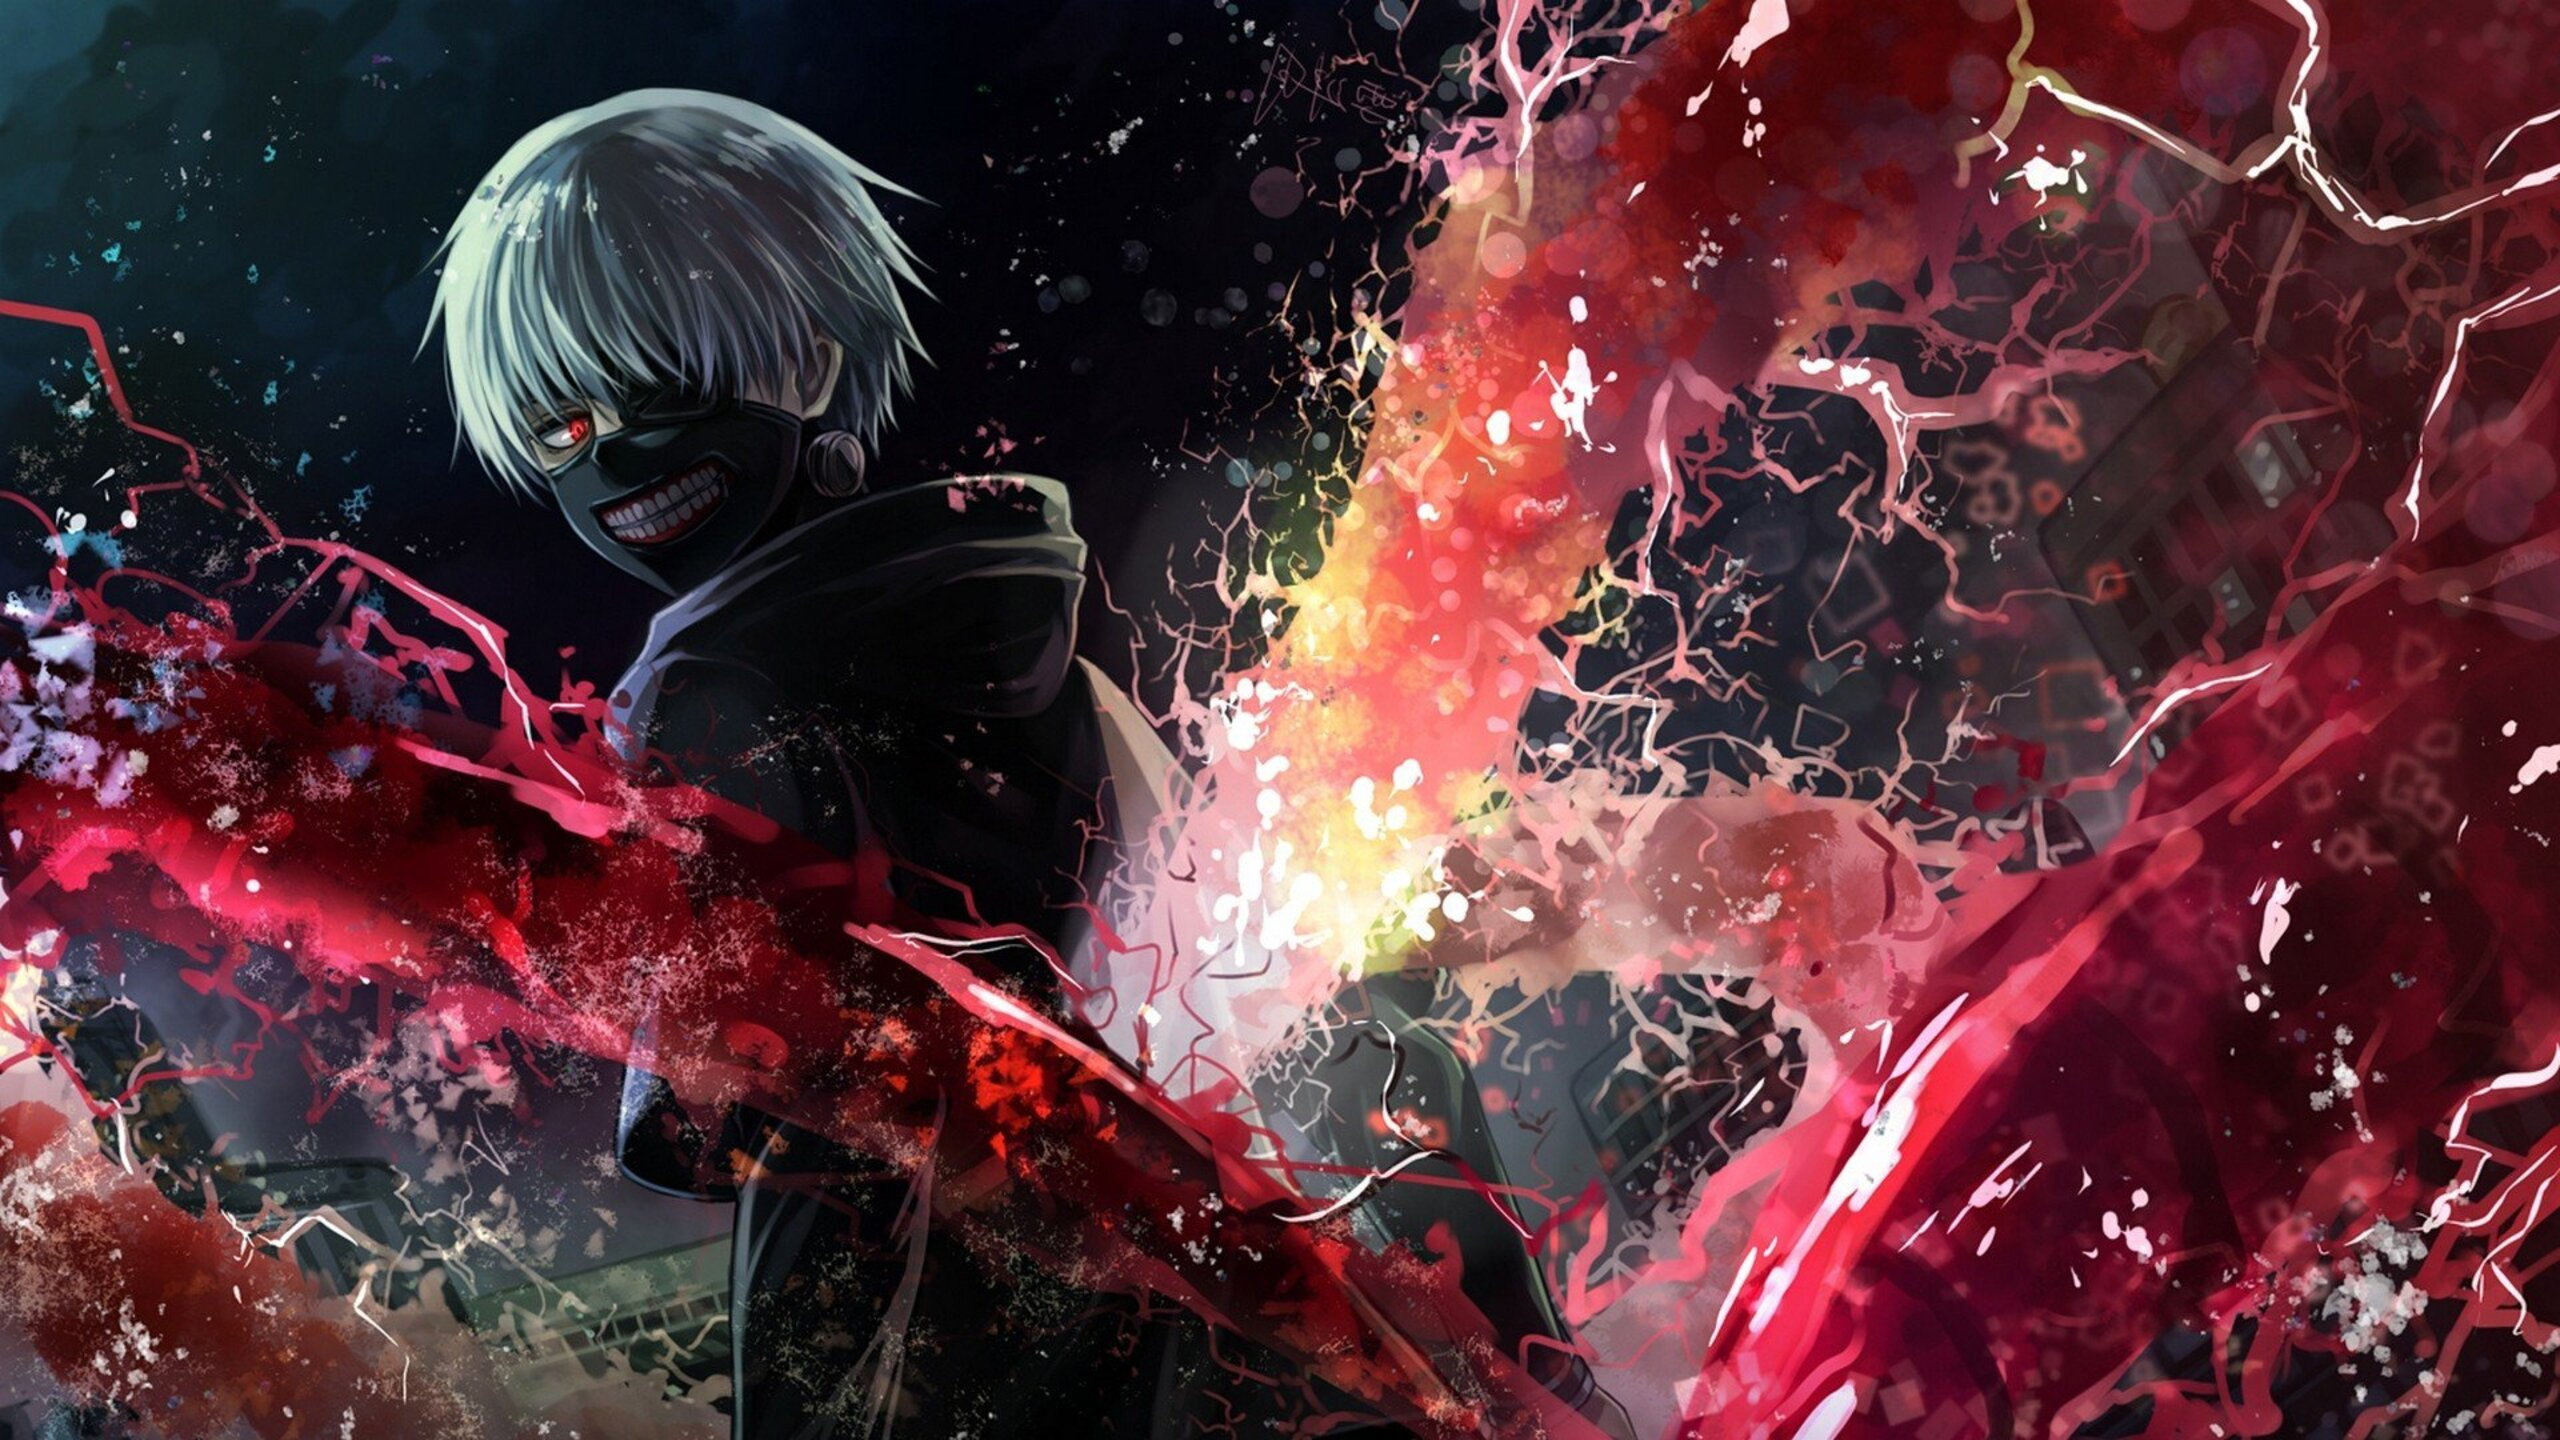 2560x1440 Tokyo Ghoul Art 1440P Resolution HD 4k Wallpapers, Images, Backgrounds, Photos and